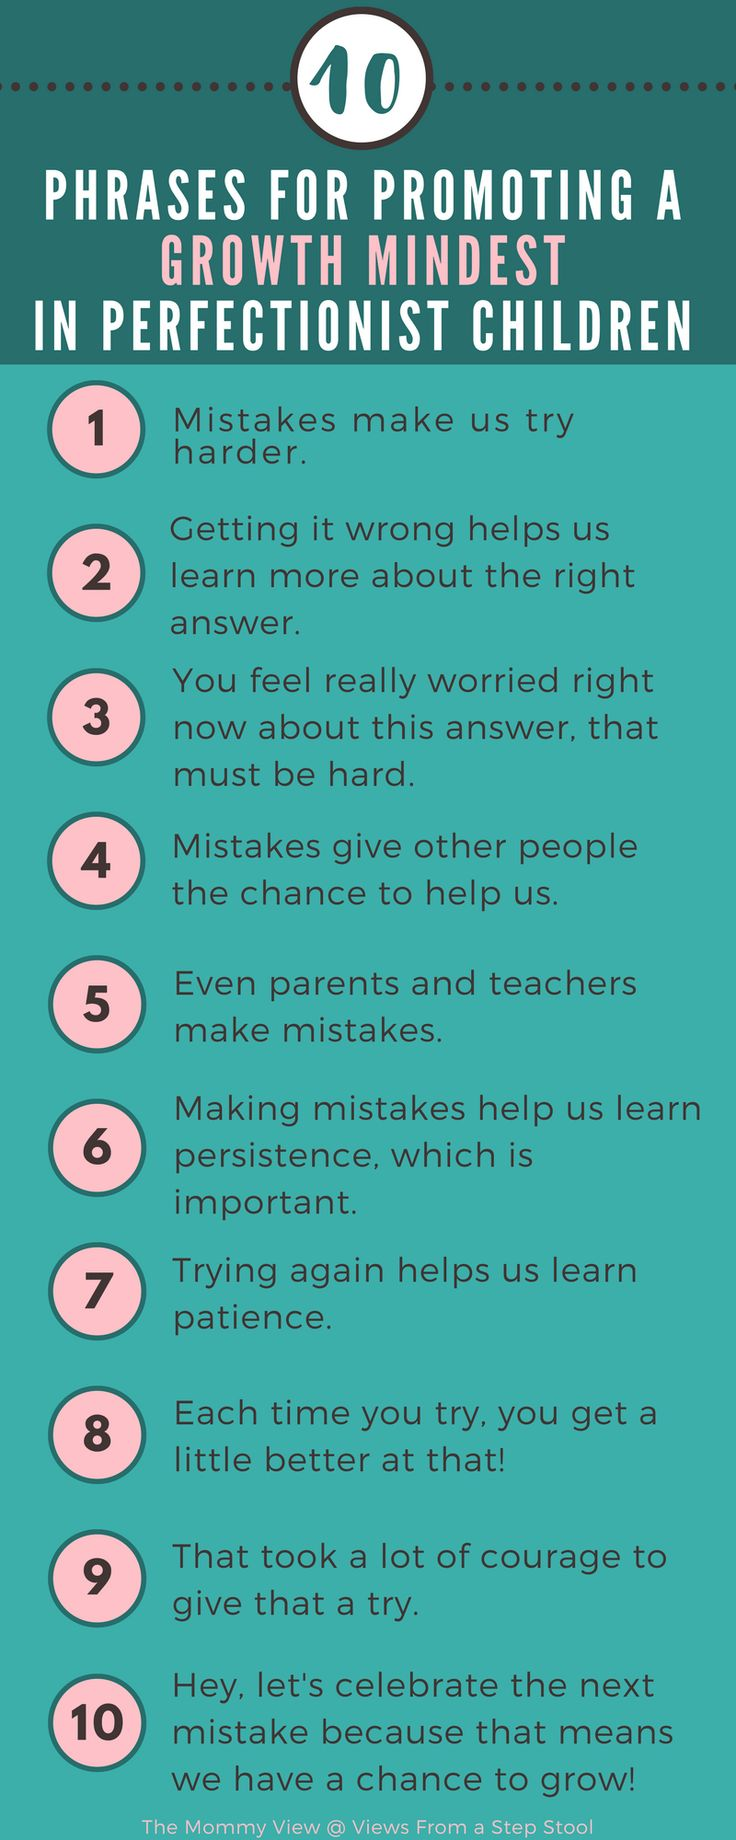 Having perfectionist children can be challenging as we try to validate the fears and frustrations they are facing, all while supporting and encouraging them. These phrases that promote a growth mindset are excellent for responding to you little perfection